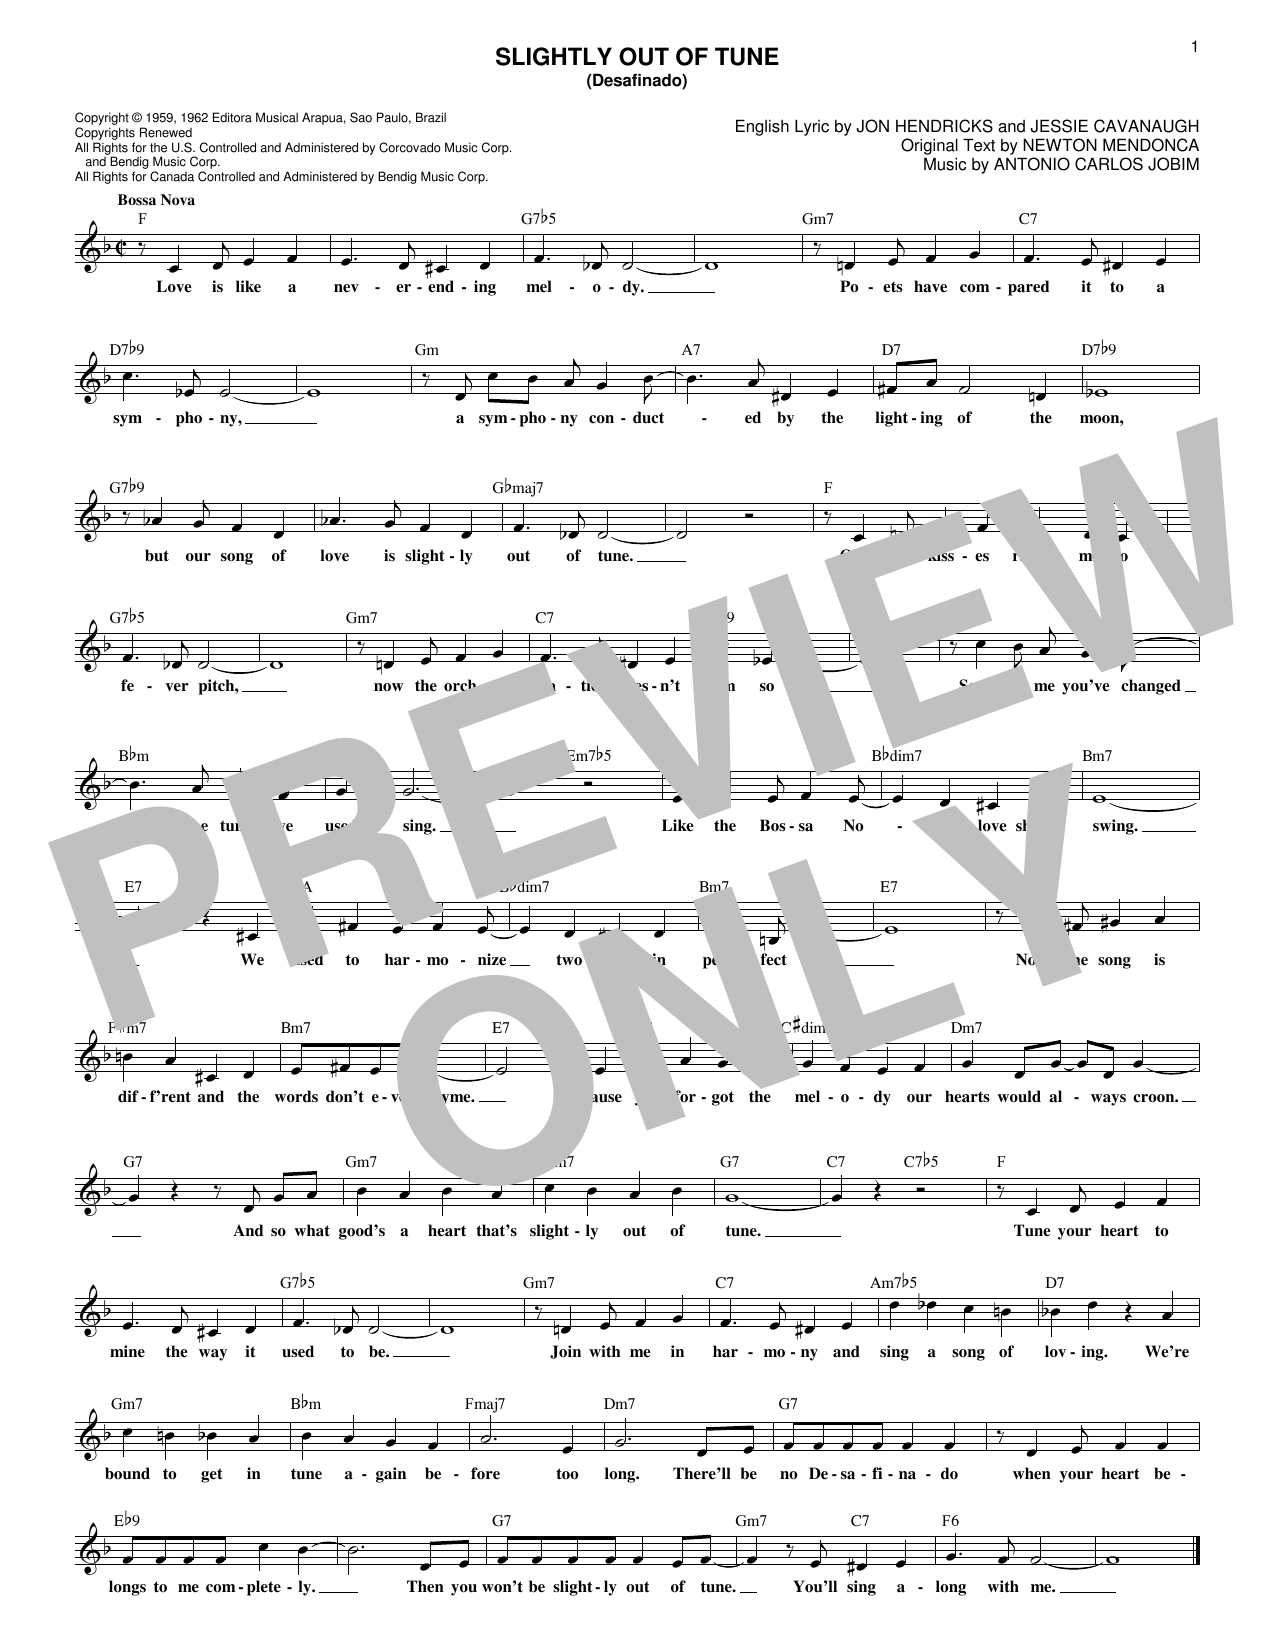 Slightly Out Of Tune (Desafinado) (Lead Sheet / Fake Book)